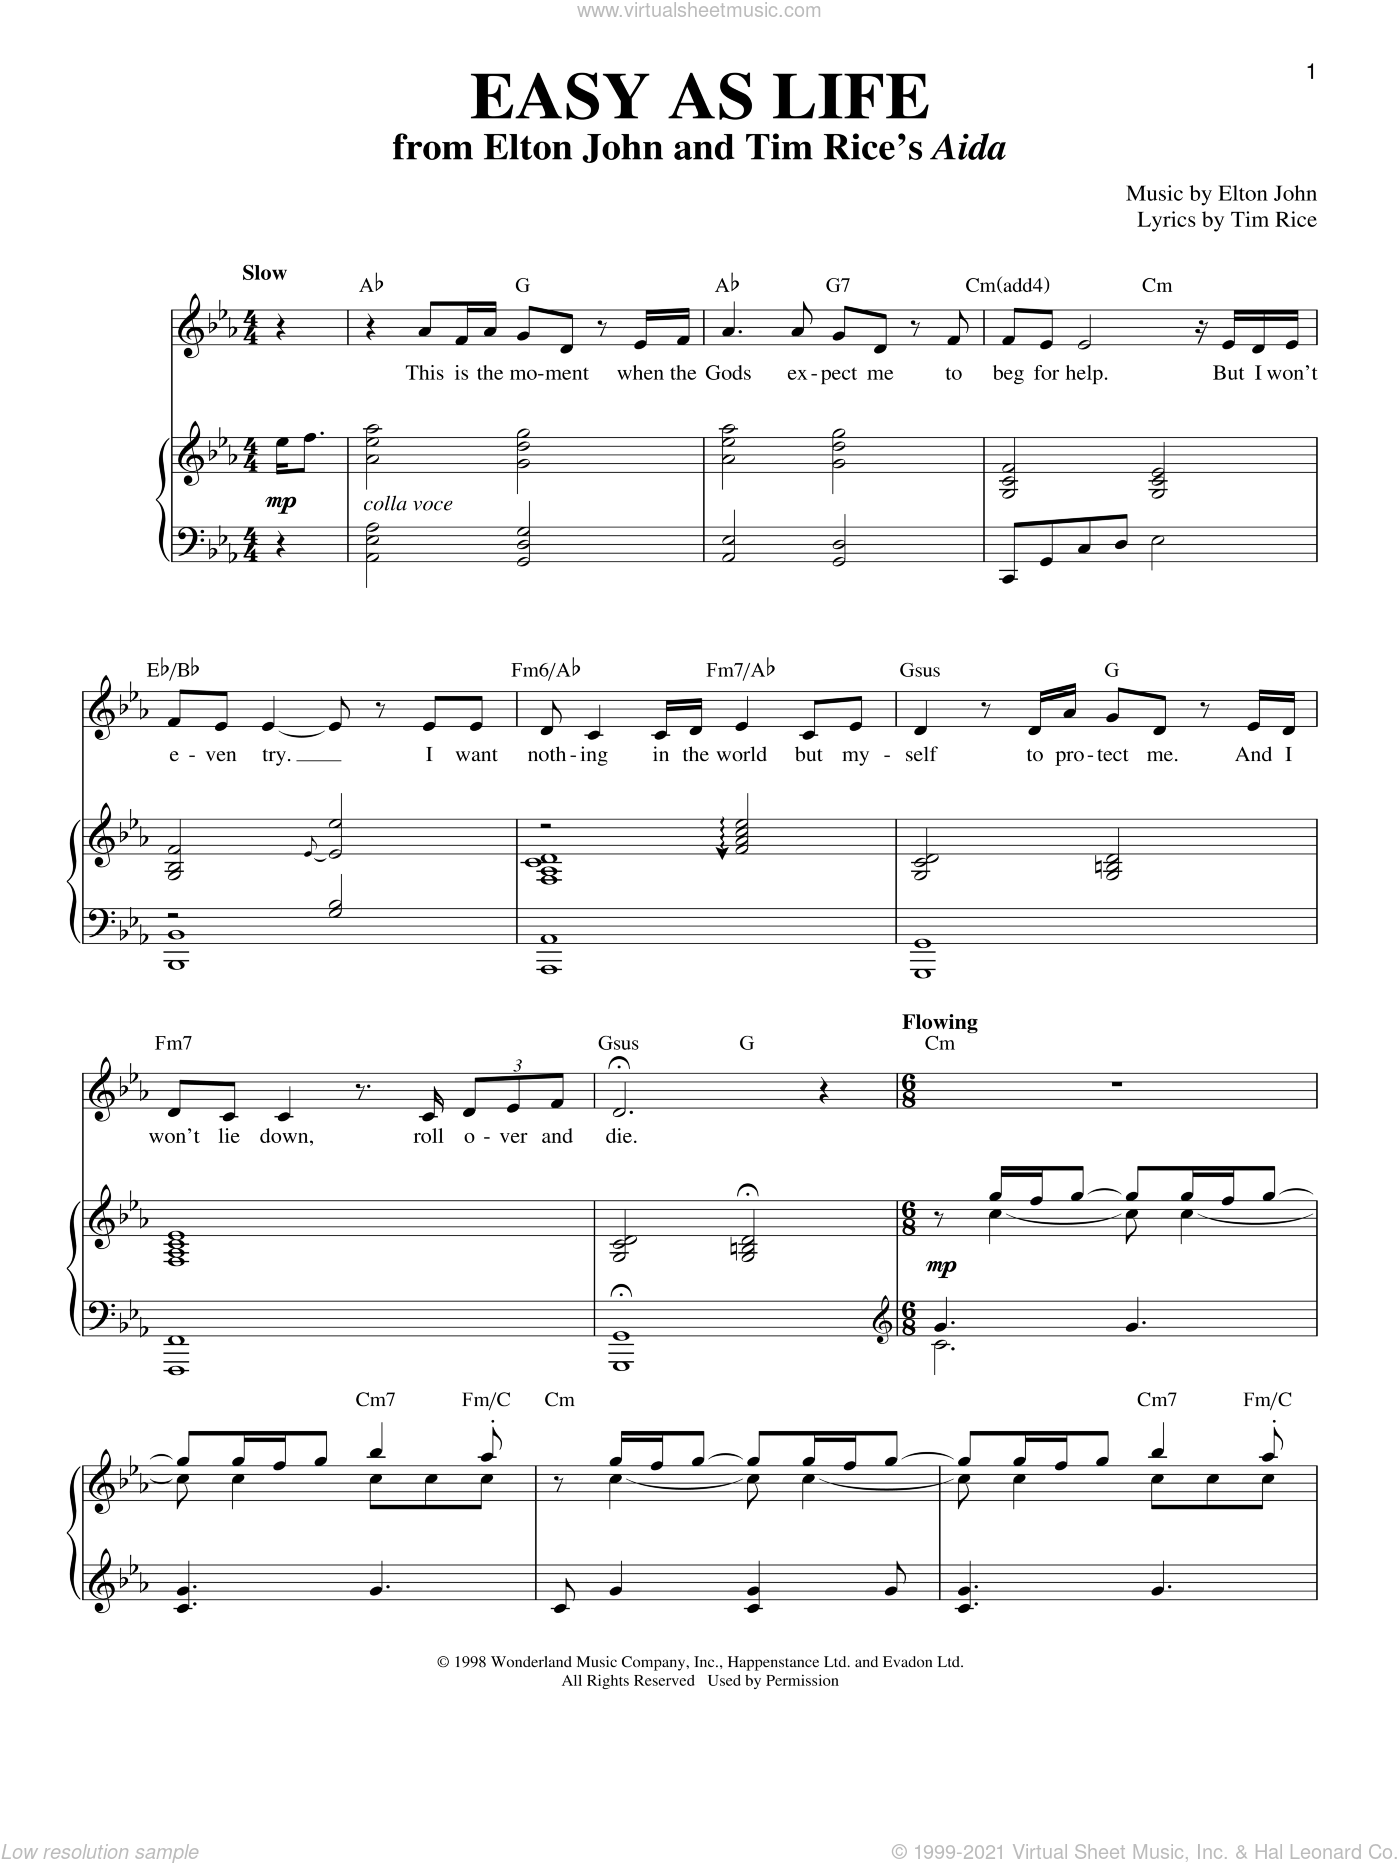 Easy As Life sheet music for voice and piano by Elton John and Tim Rice, intermediate skill level